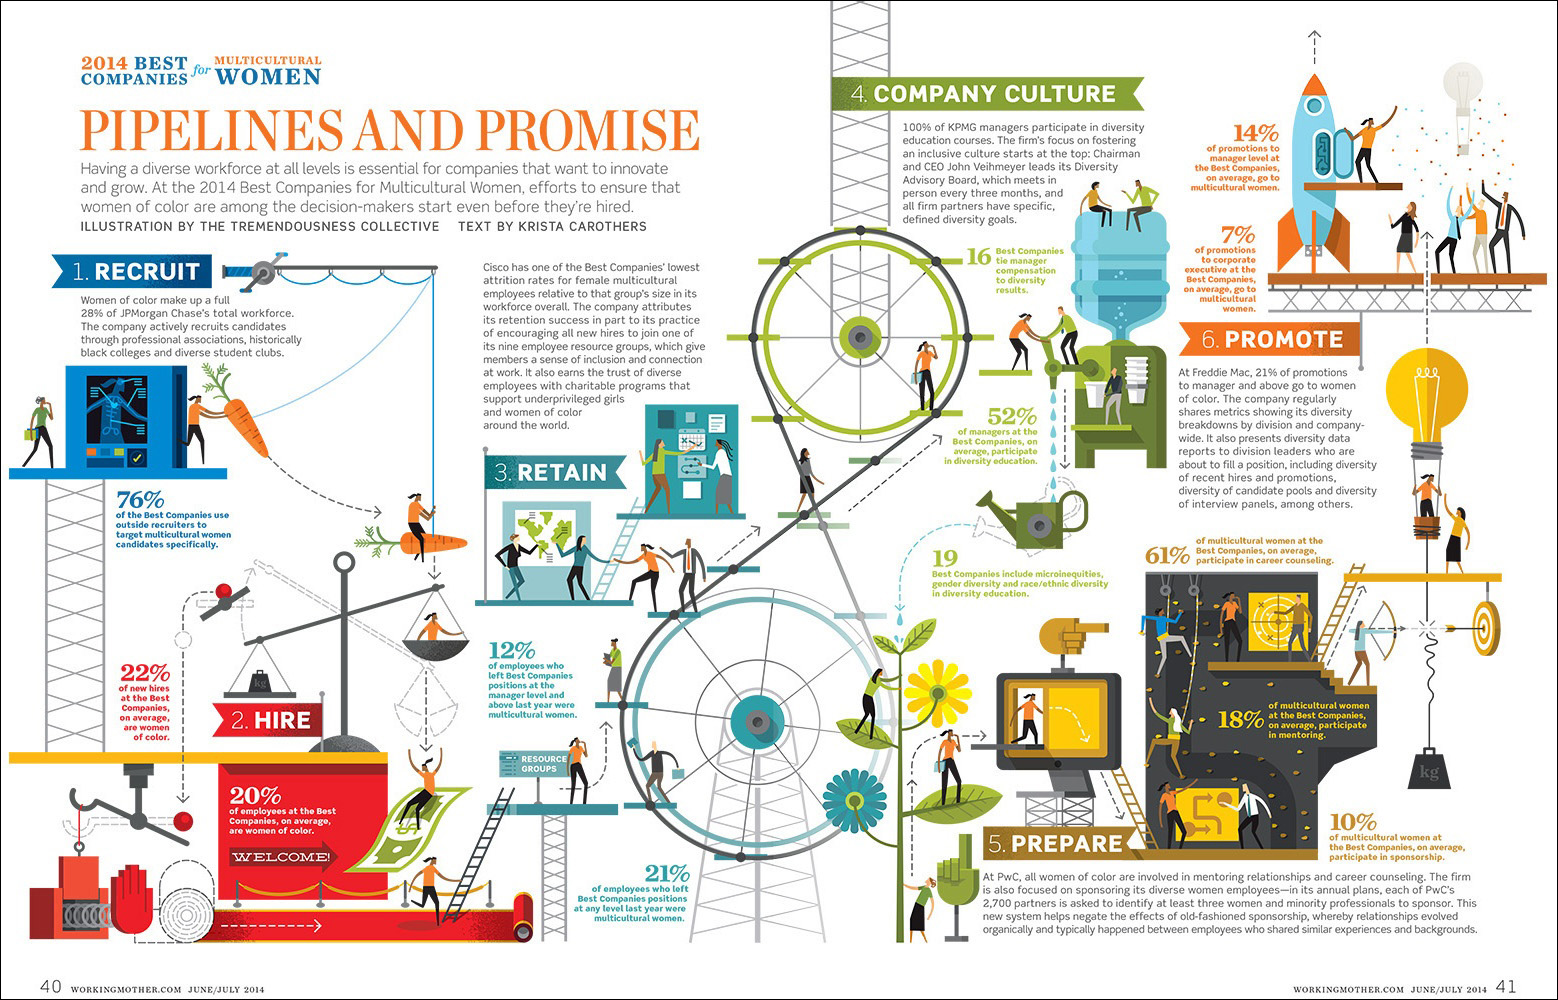 Pipelines and Promise, an infographic about creating a diverse workforce